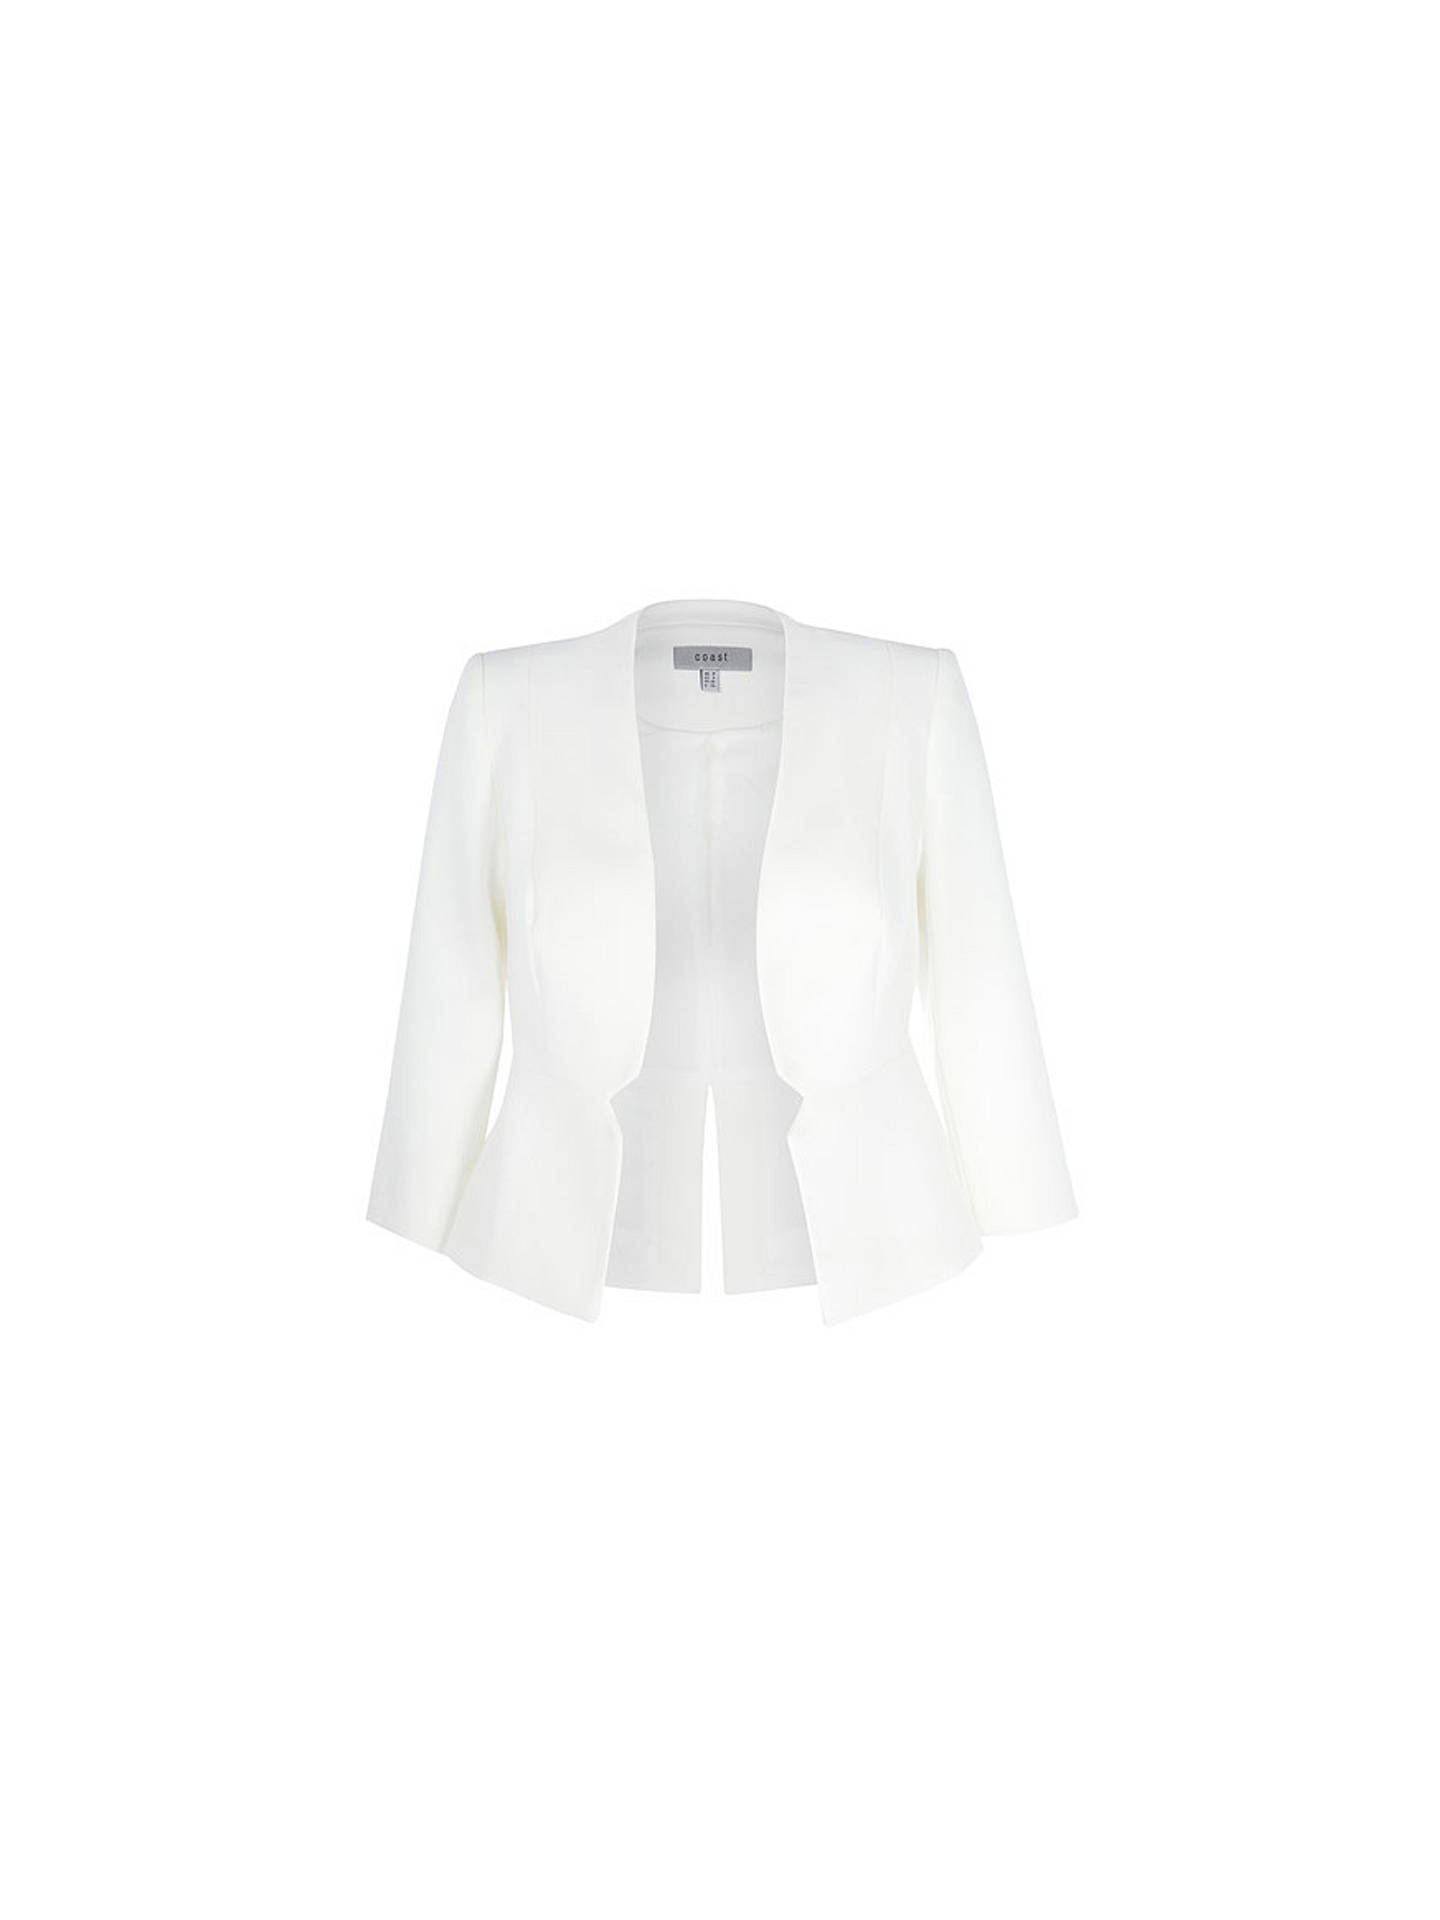 BuyCoast Tyler Notch Detail Jacket, Ivory, 6 Online at johnlewis.com